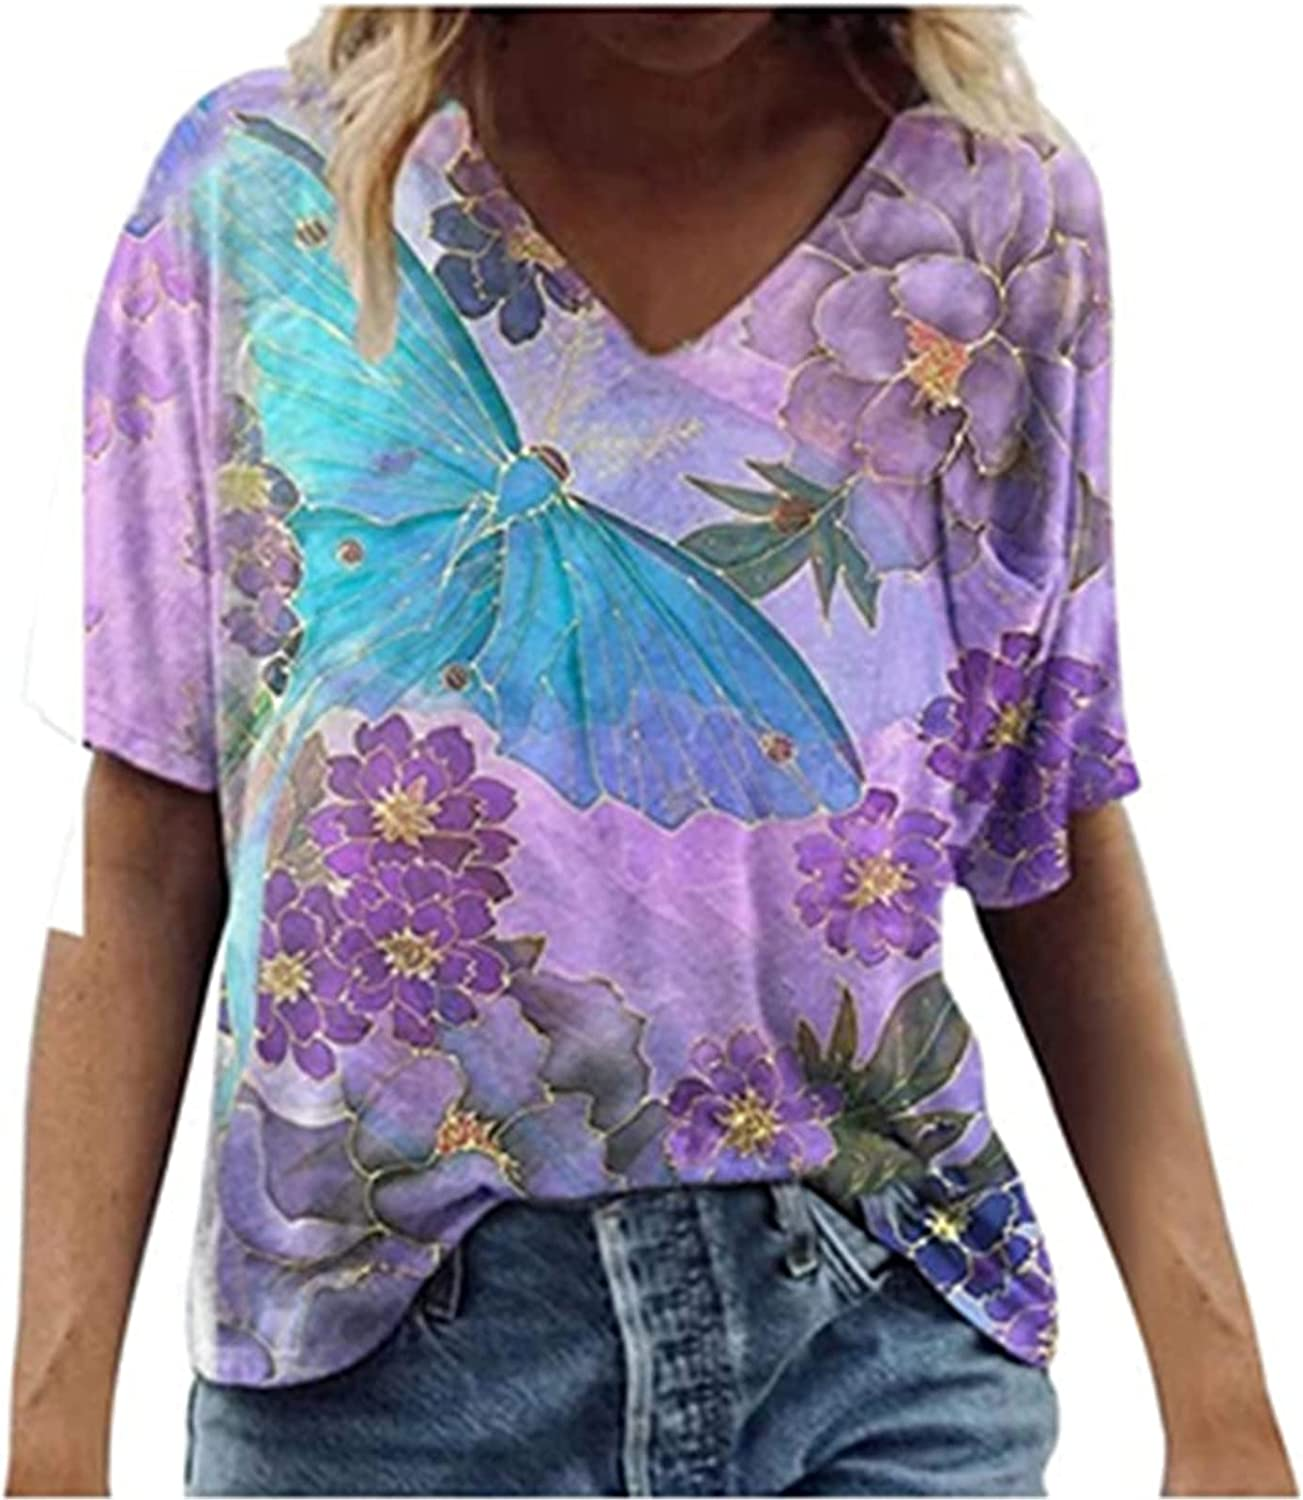 Veloday Shirts for Women,Womens V Neck Short Sleeve Blouse Summer Tops Casual T-Shirt V-Neck Shirts Floral Printed Tops Tees